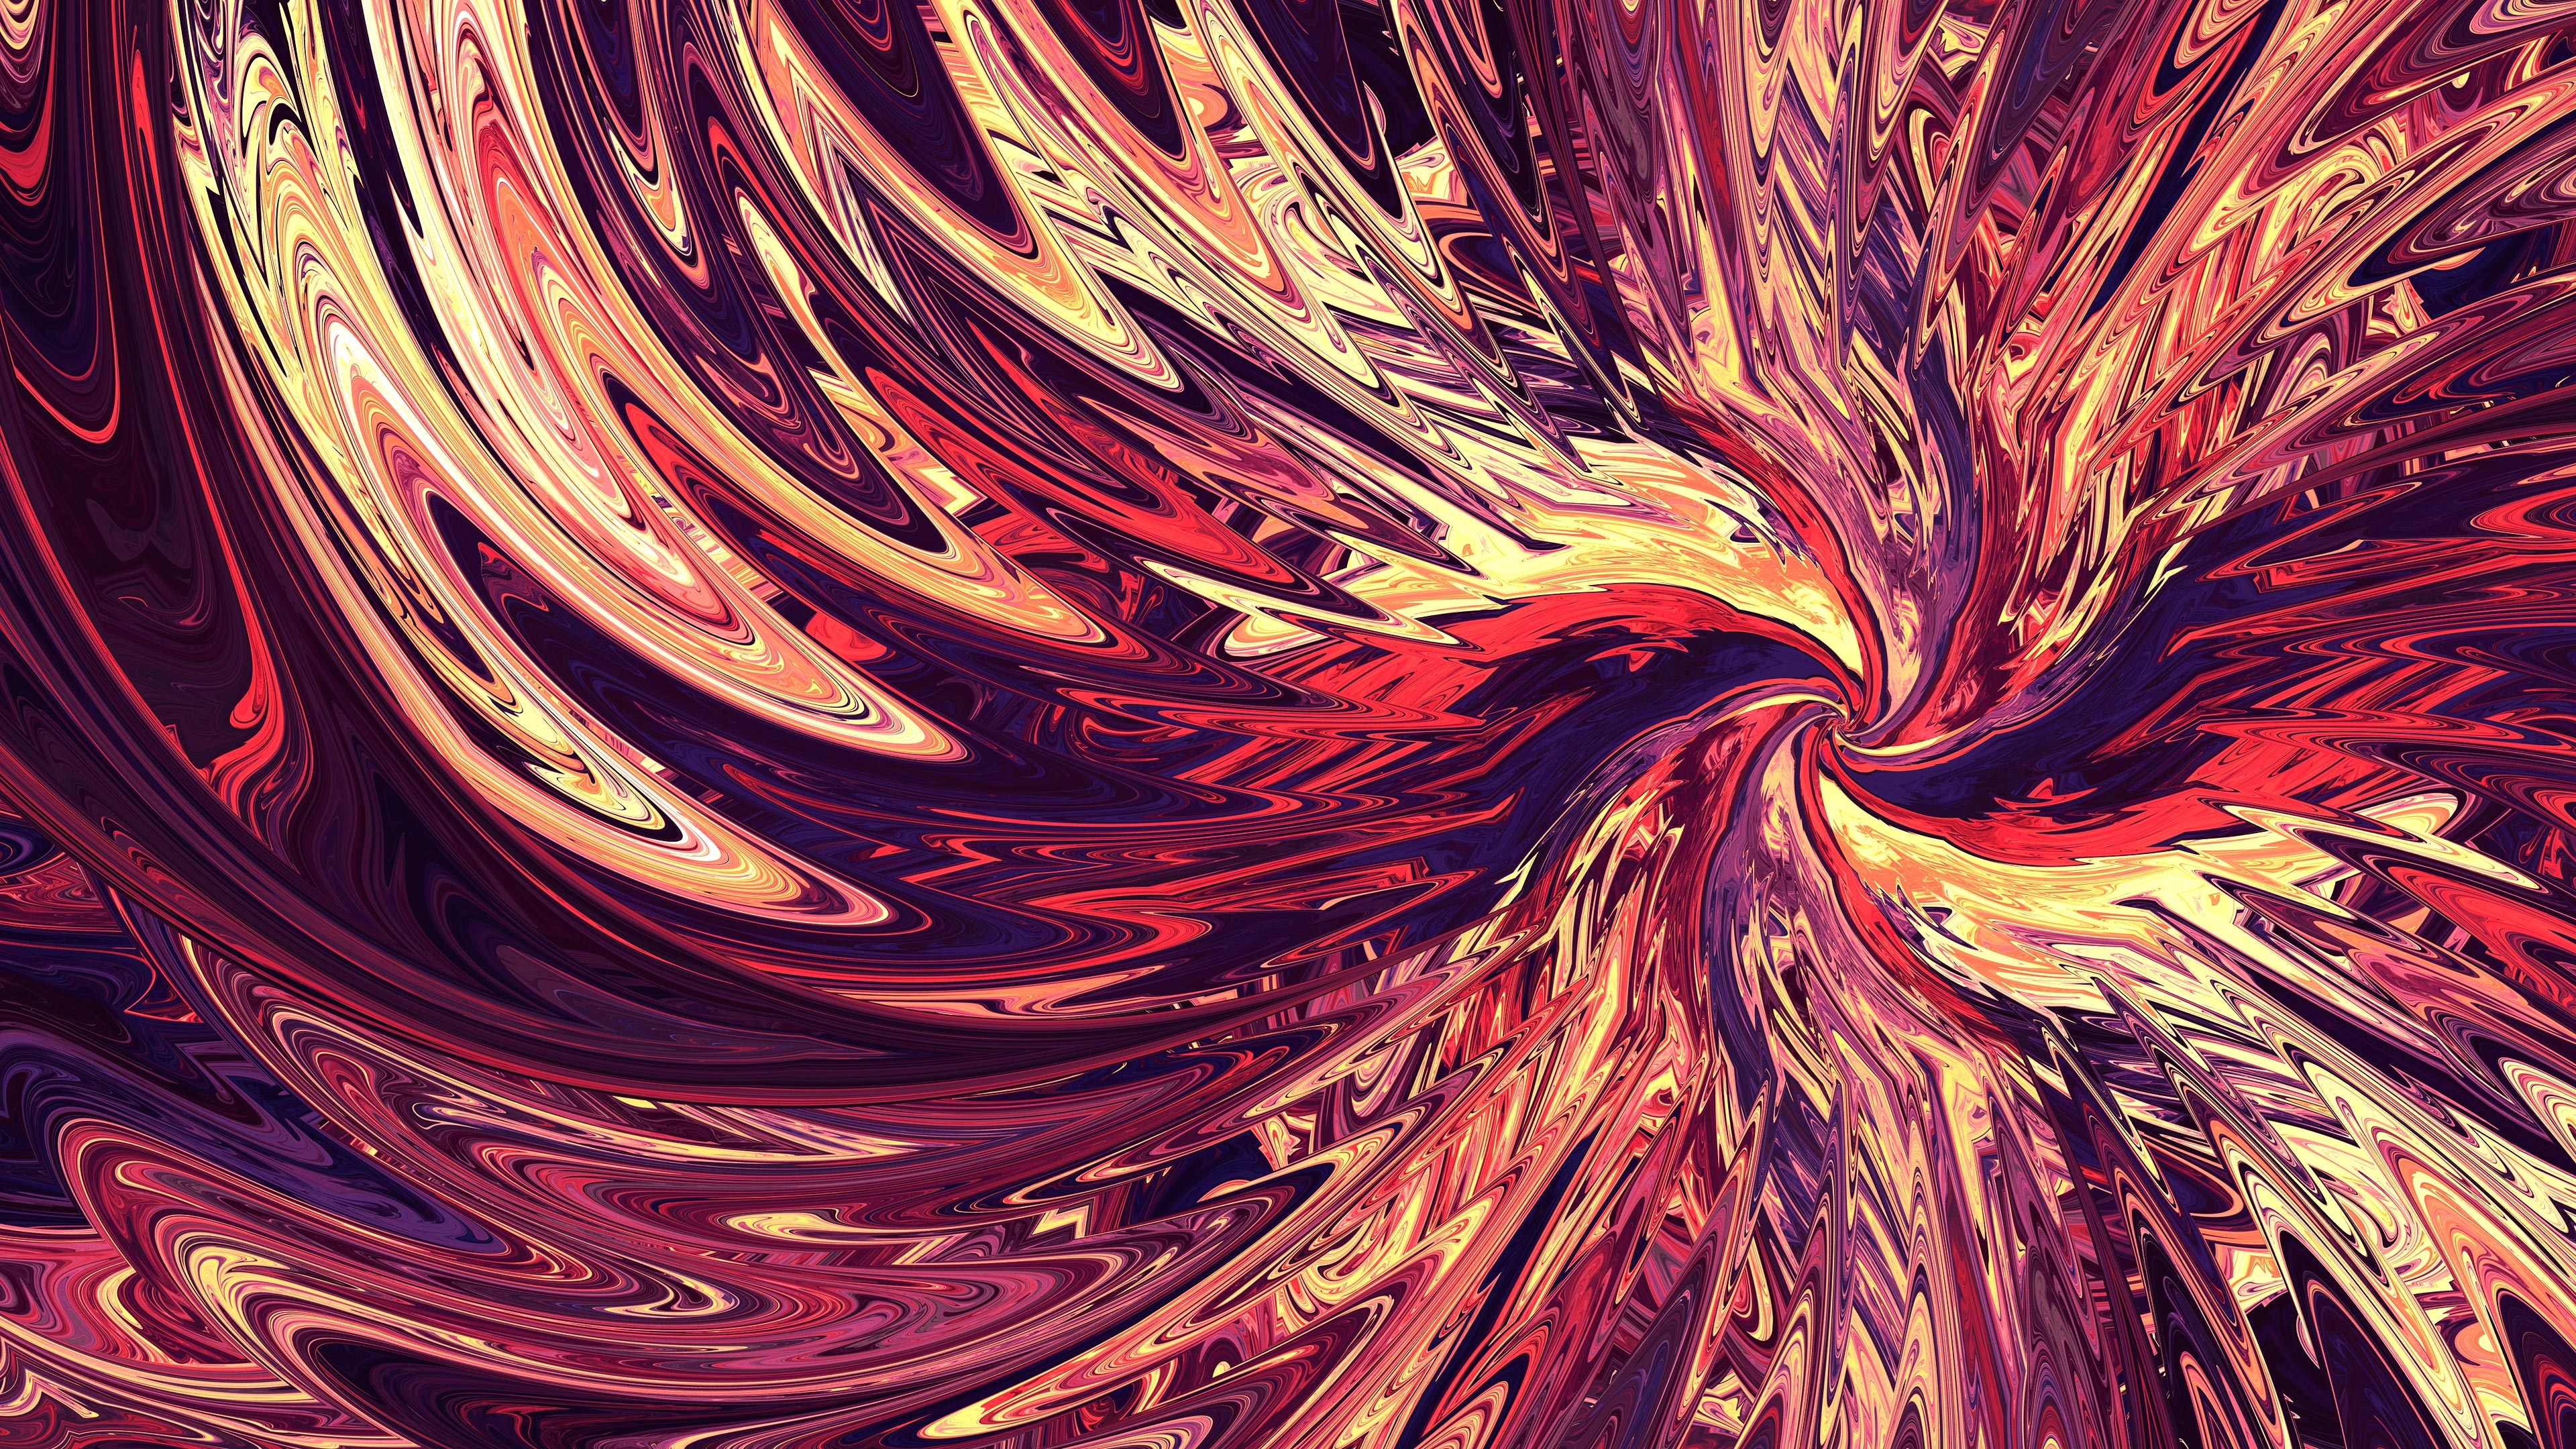 1080x2340 Swirl 4k Abstract 1080x2340 Resolution Wallpaper